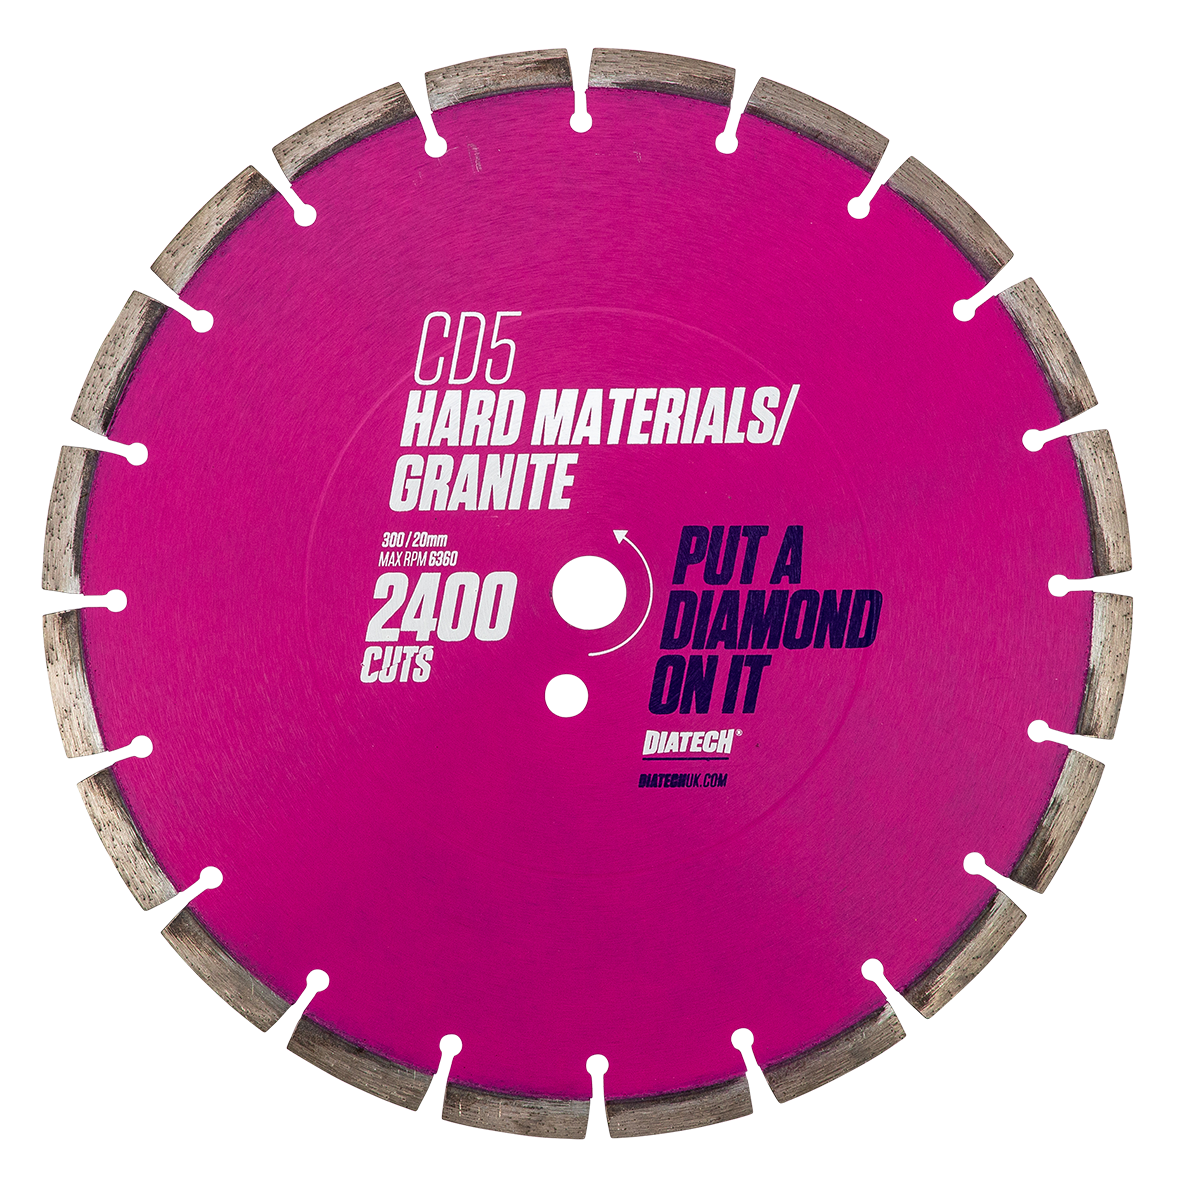 Diamond Blades for Cutting Granite CD5